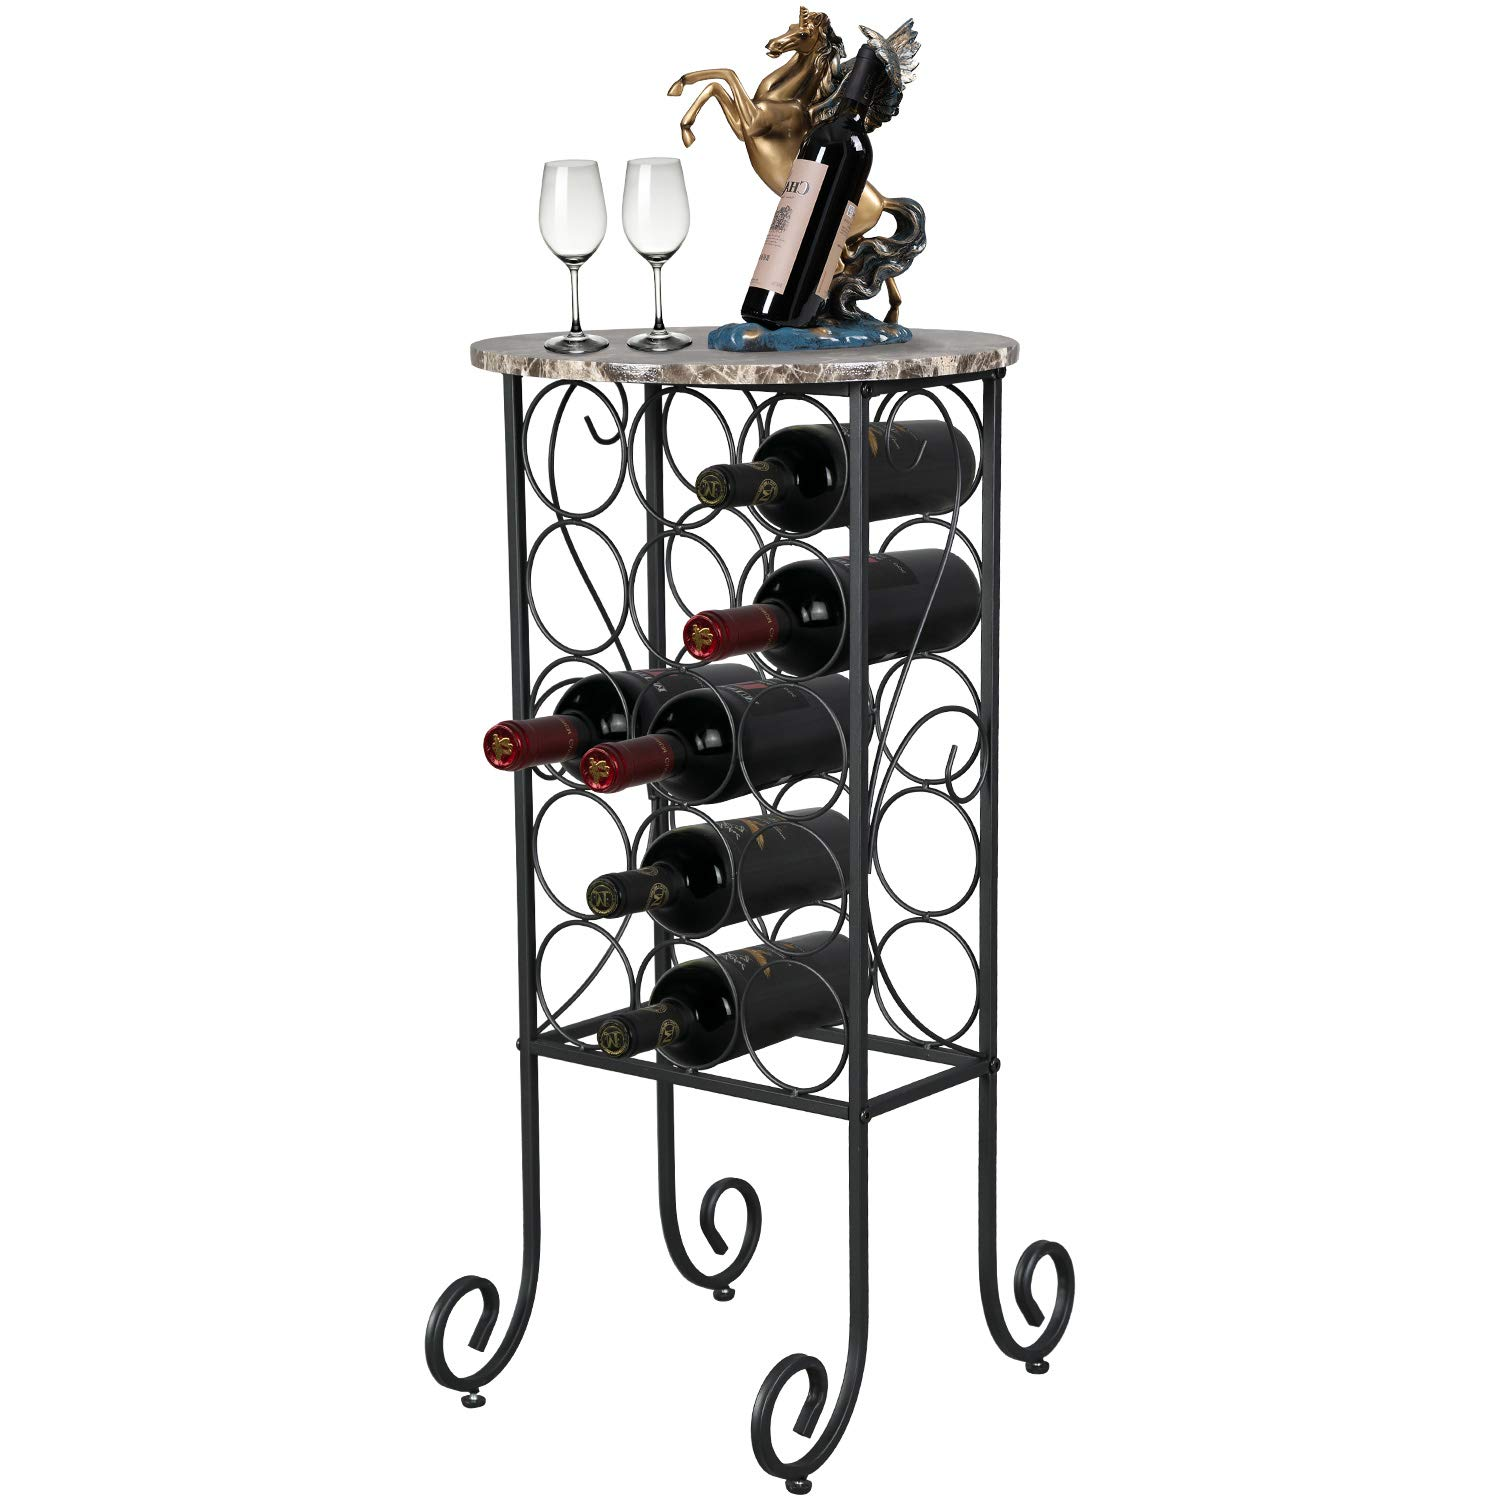 Petiture Wine Rack Table with Marble Finish Top, Wine Rack Freestanding Floor Bottles Bar Storage & Display Holder, Holds 15 Bottles Wine, Wine Rack to Compliment Any Space (Wine Stand - 15 Bottles).